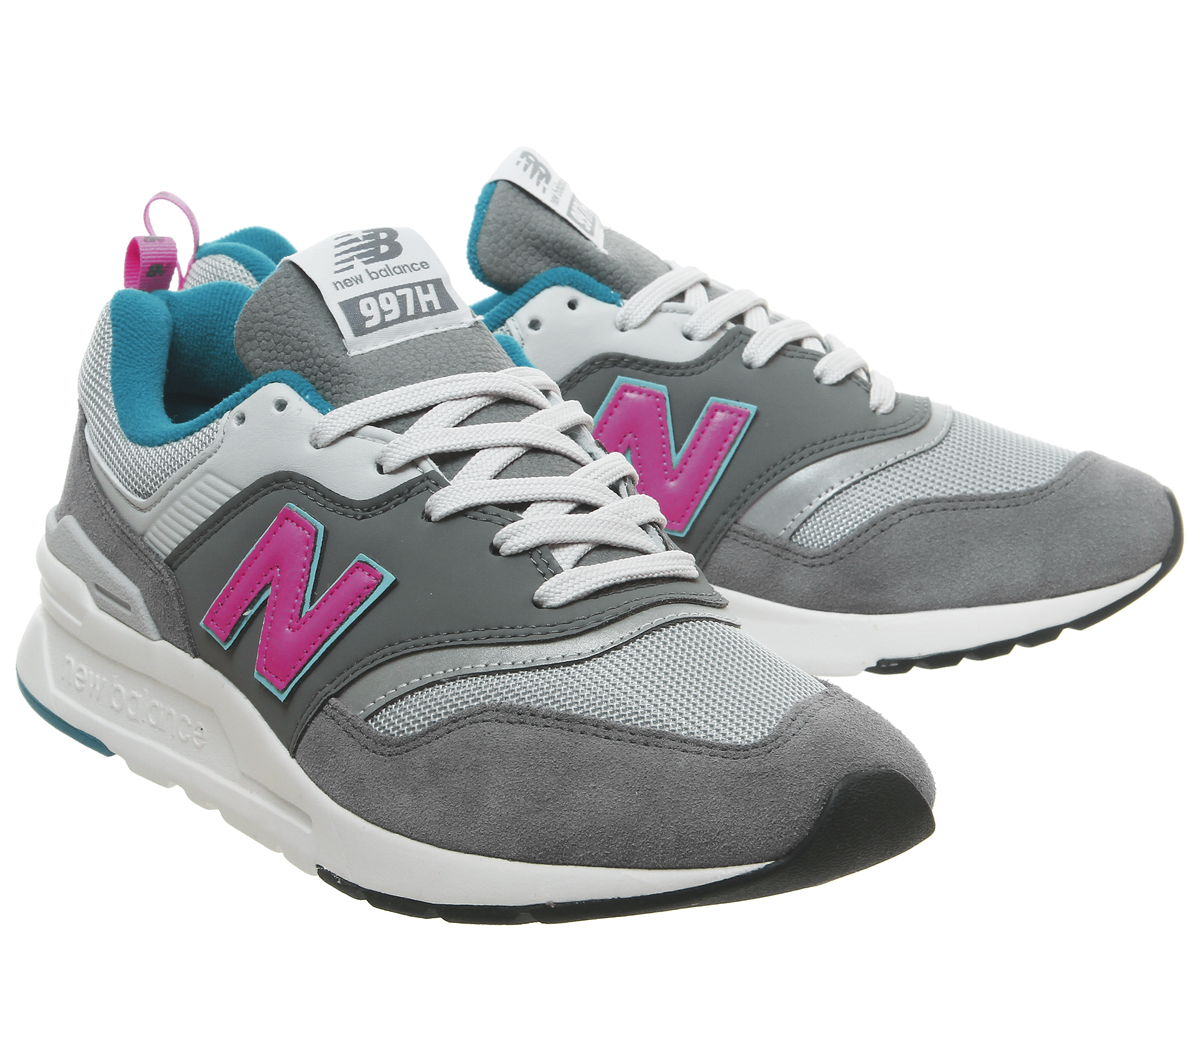 New-Balance-997-Trainers-Castlerock-Peony-Trainers-Shoes thumbnail 13